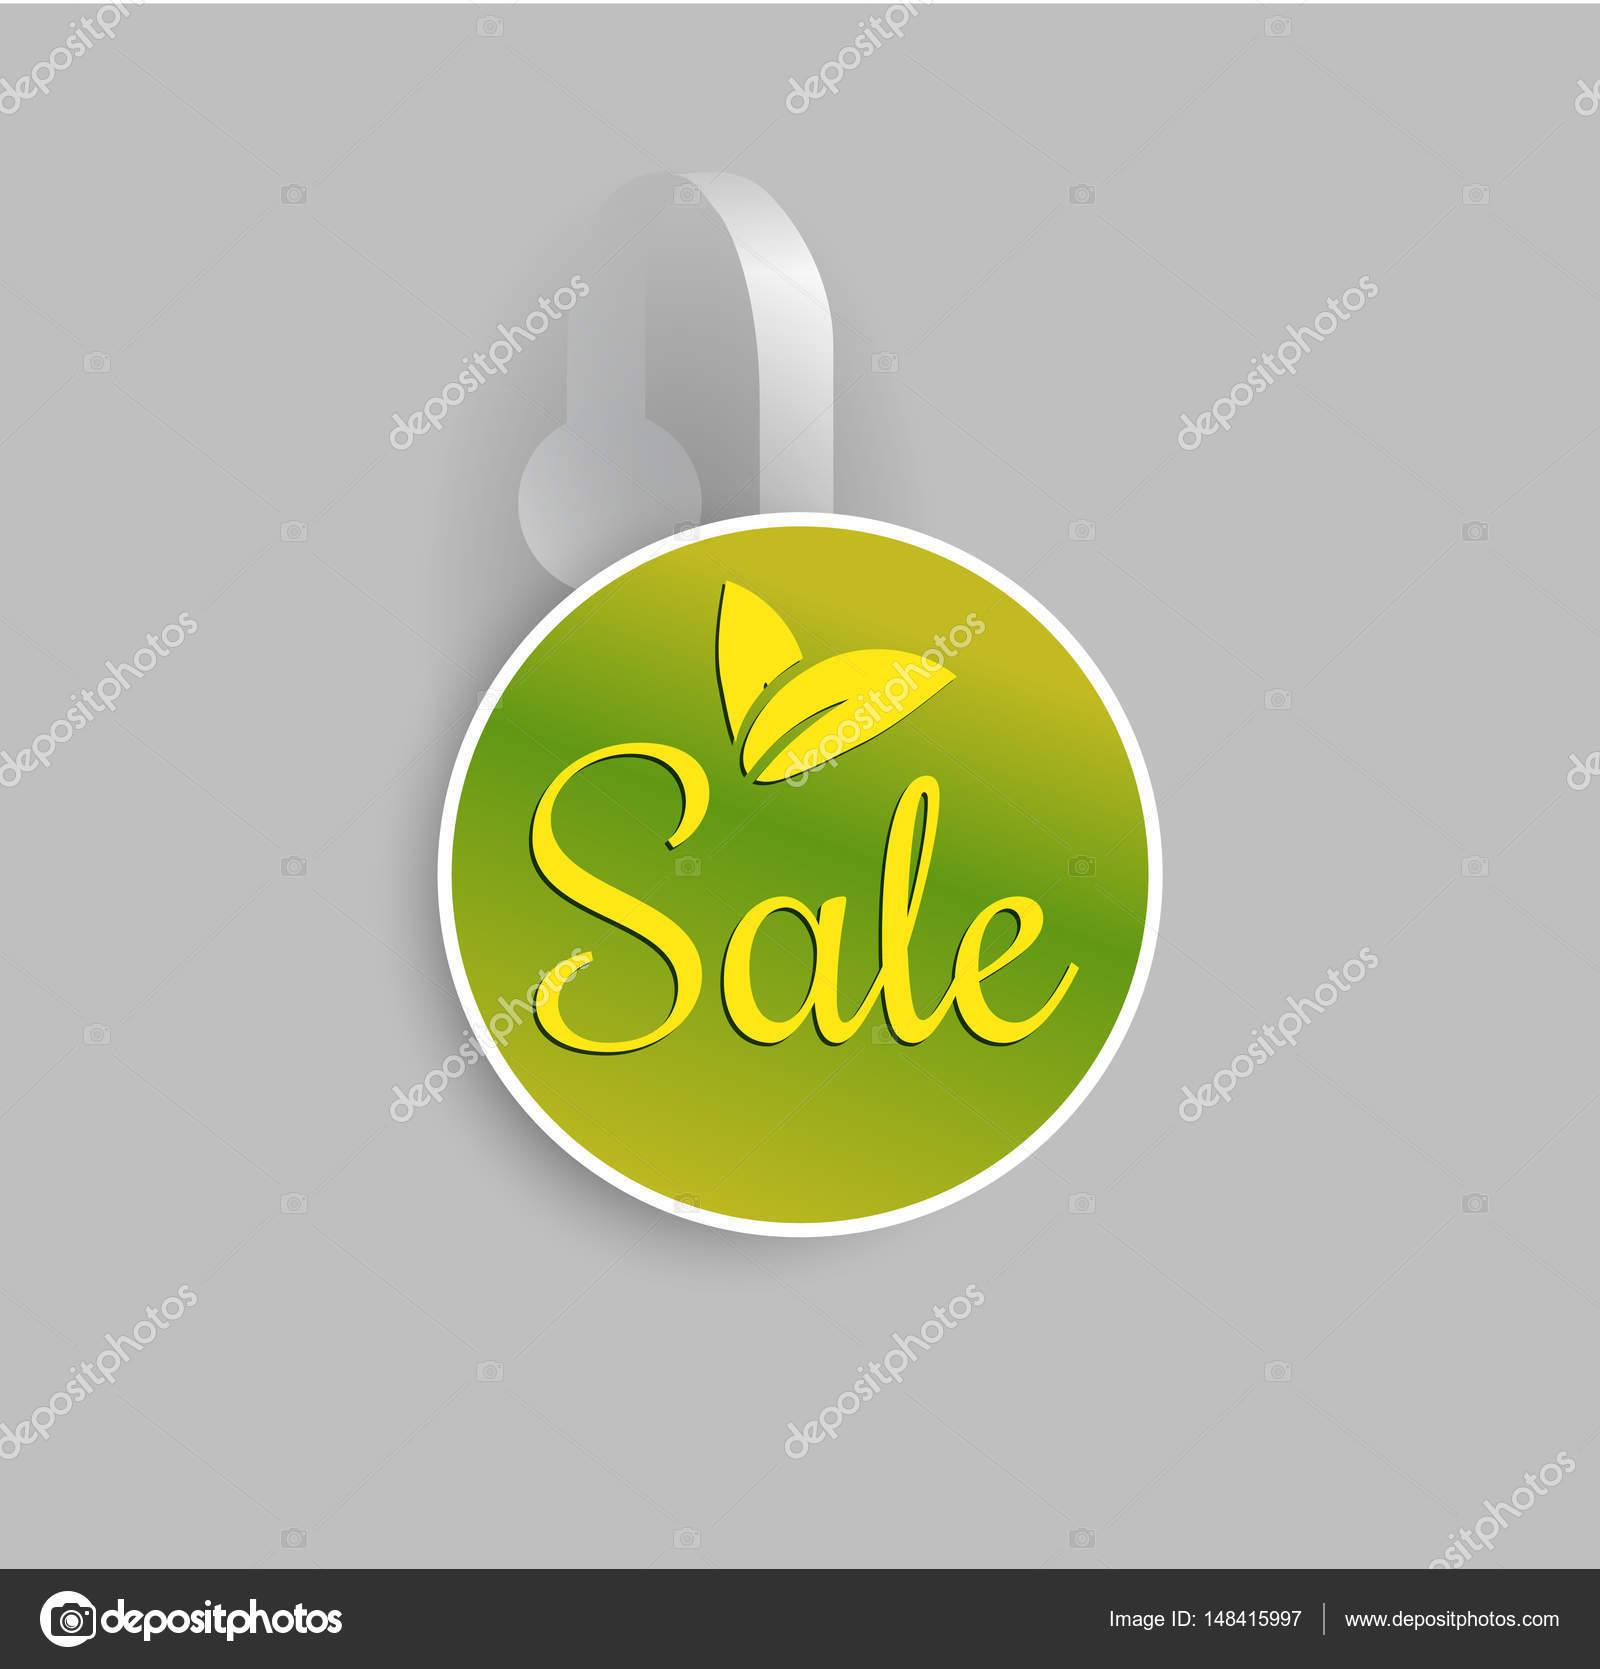 Shelf Wobbler Discount Label Mockup Stock Vector C Ilonitta 148415997